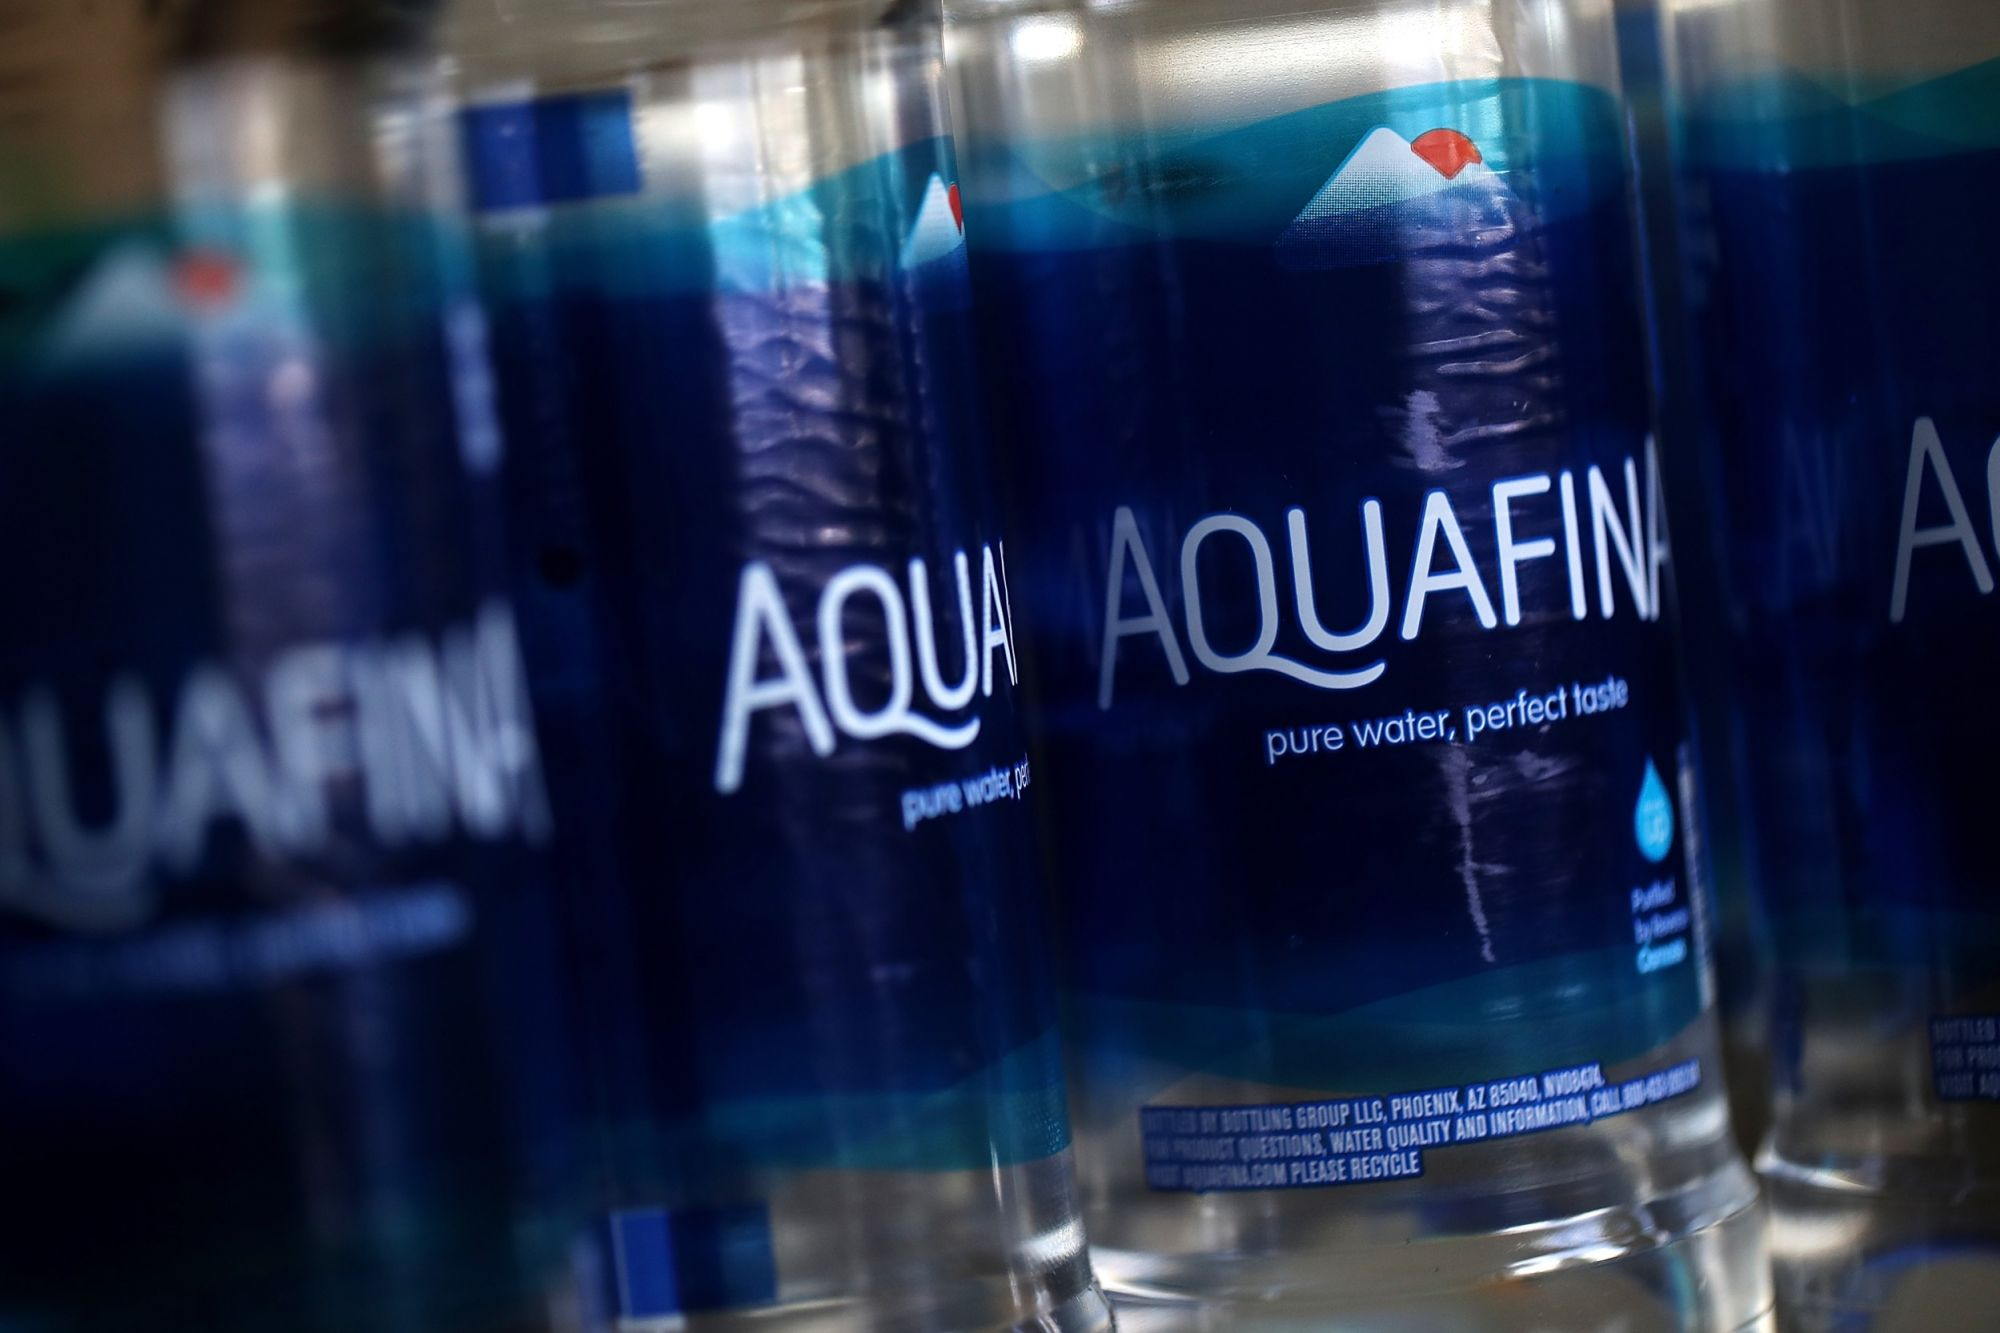 Pepsico Says It Will Reduce Its Plastic Use, Including Putting Aquafina in Cans